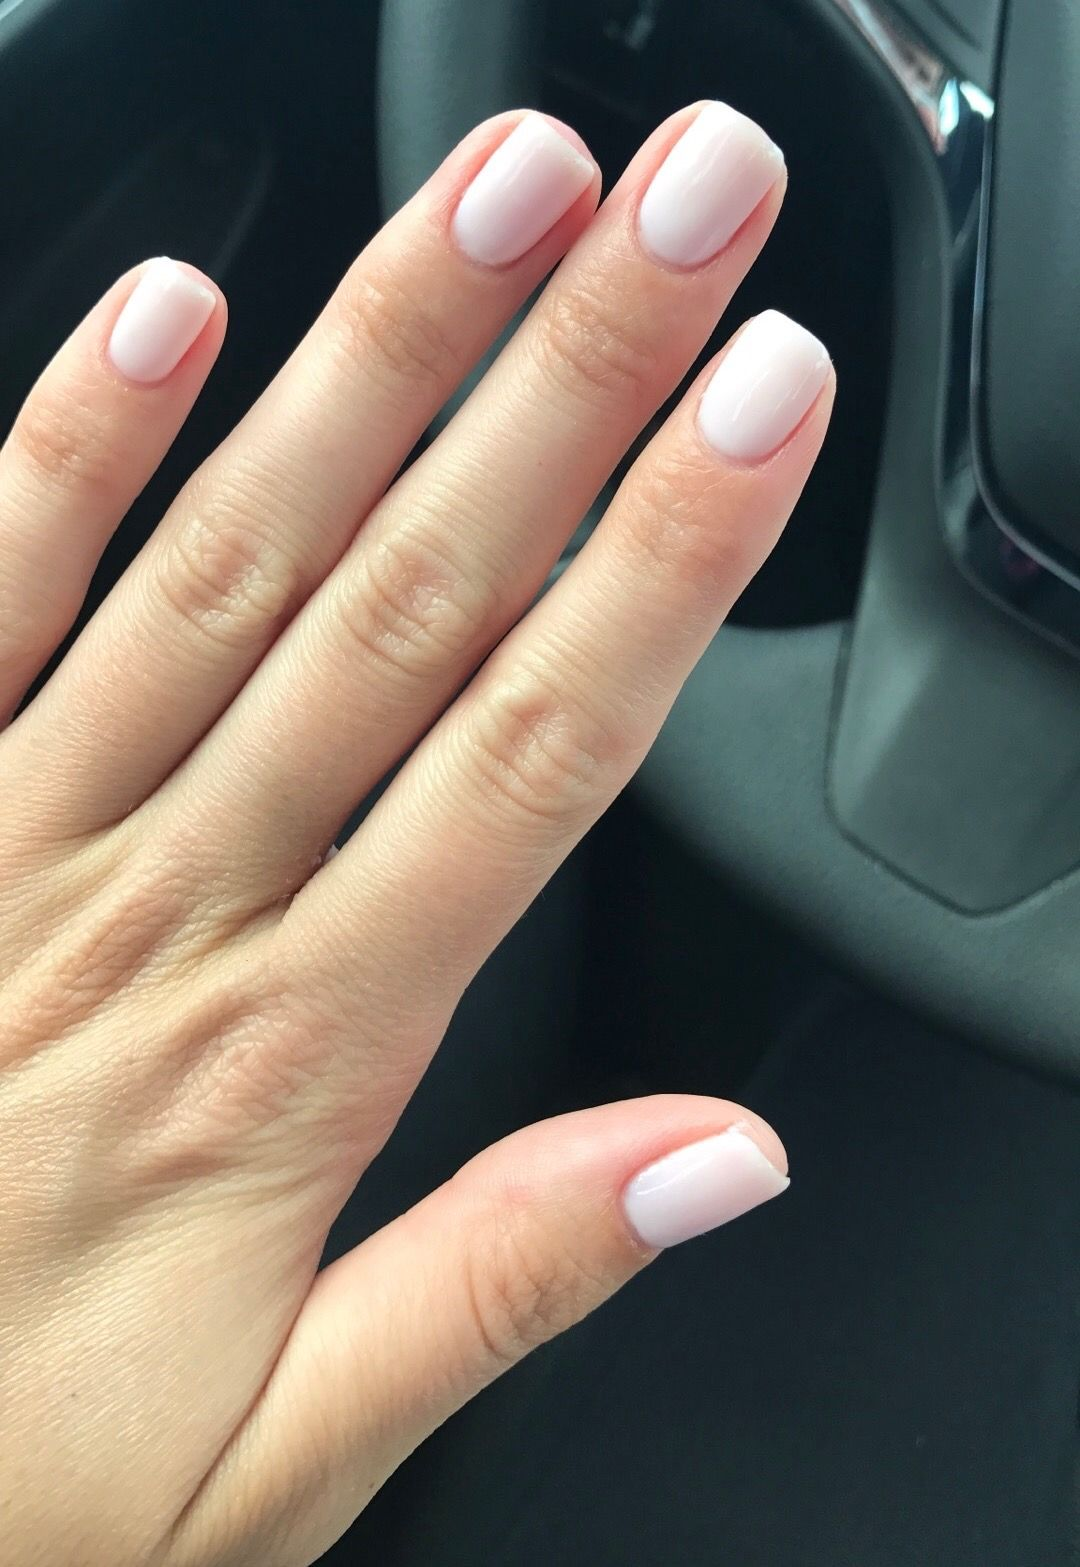 Funny bunny x2 plus bubble bath OPI | HAIR, BEAUTY, AND MORE ...